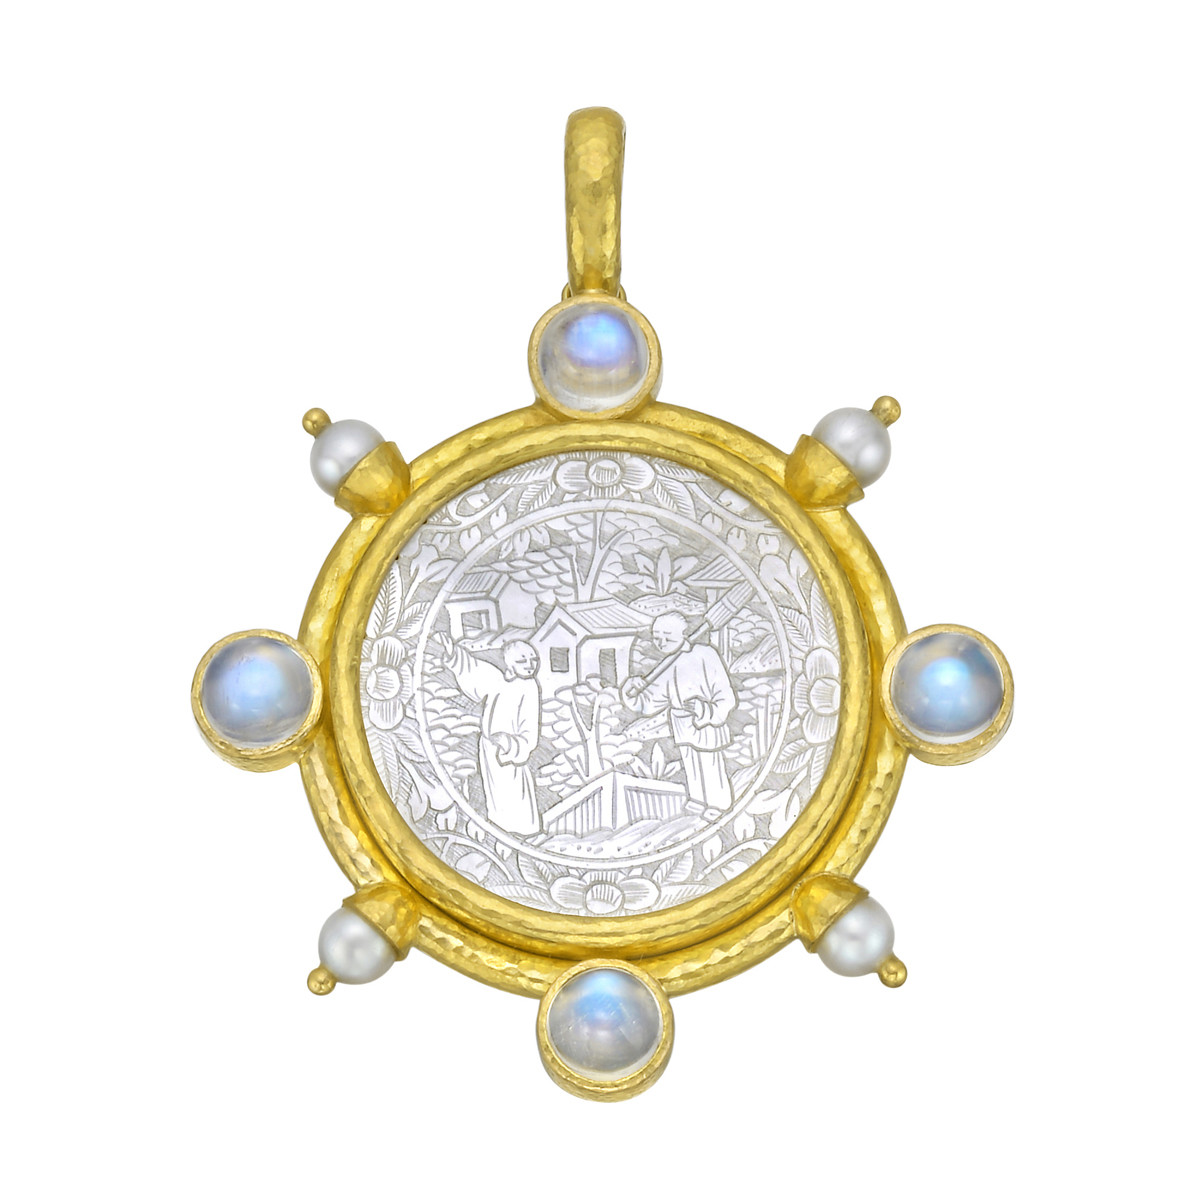 19k Yellow Gold Chinese Gambling Counter Pendant